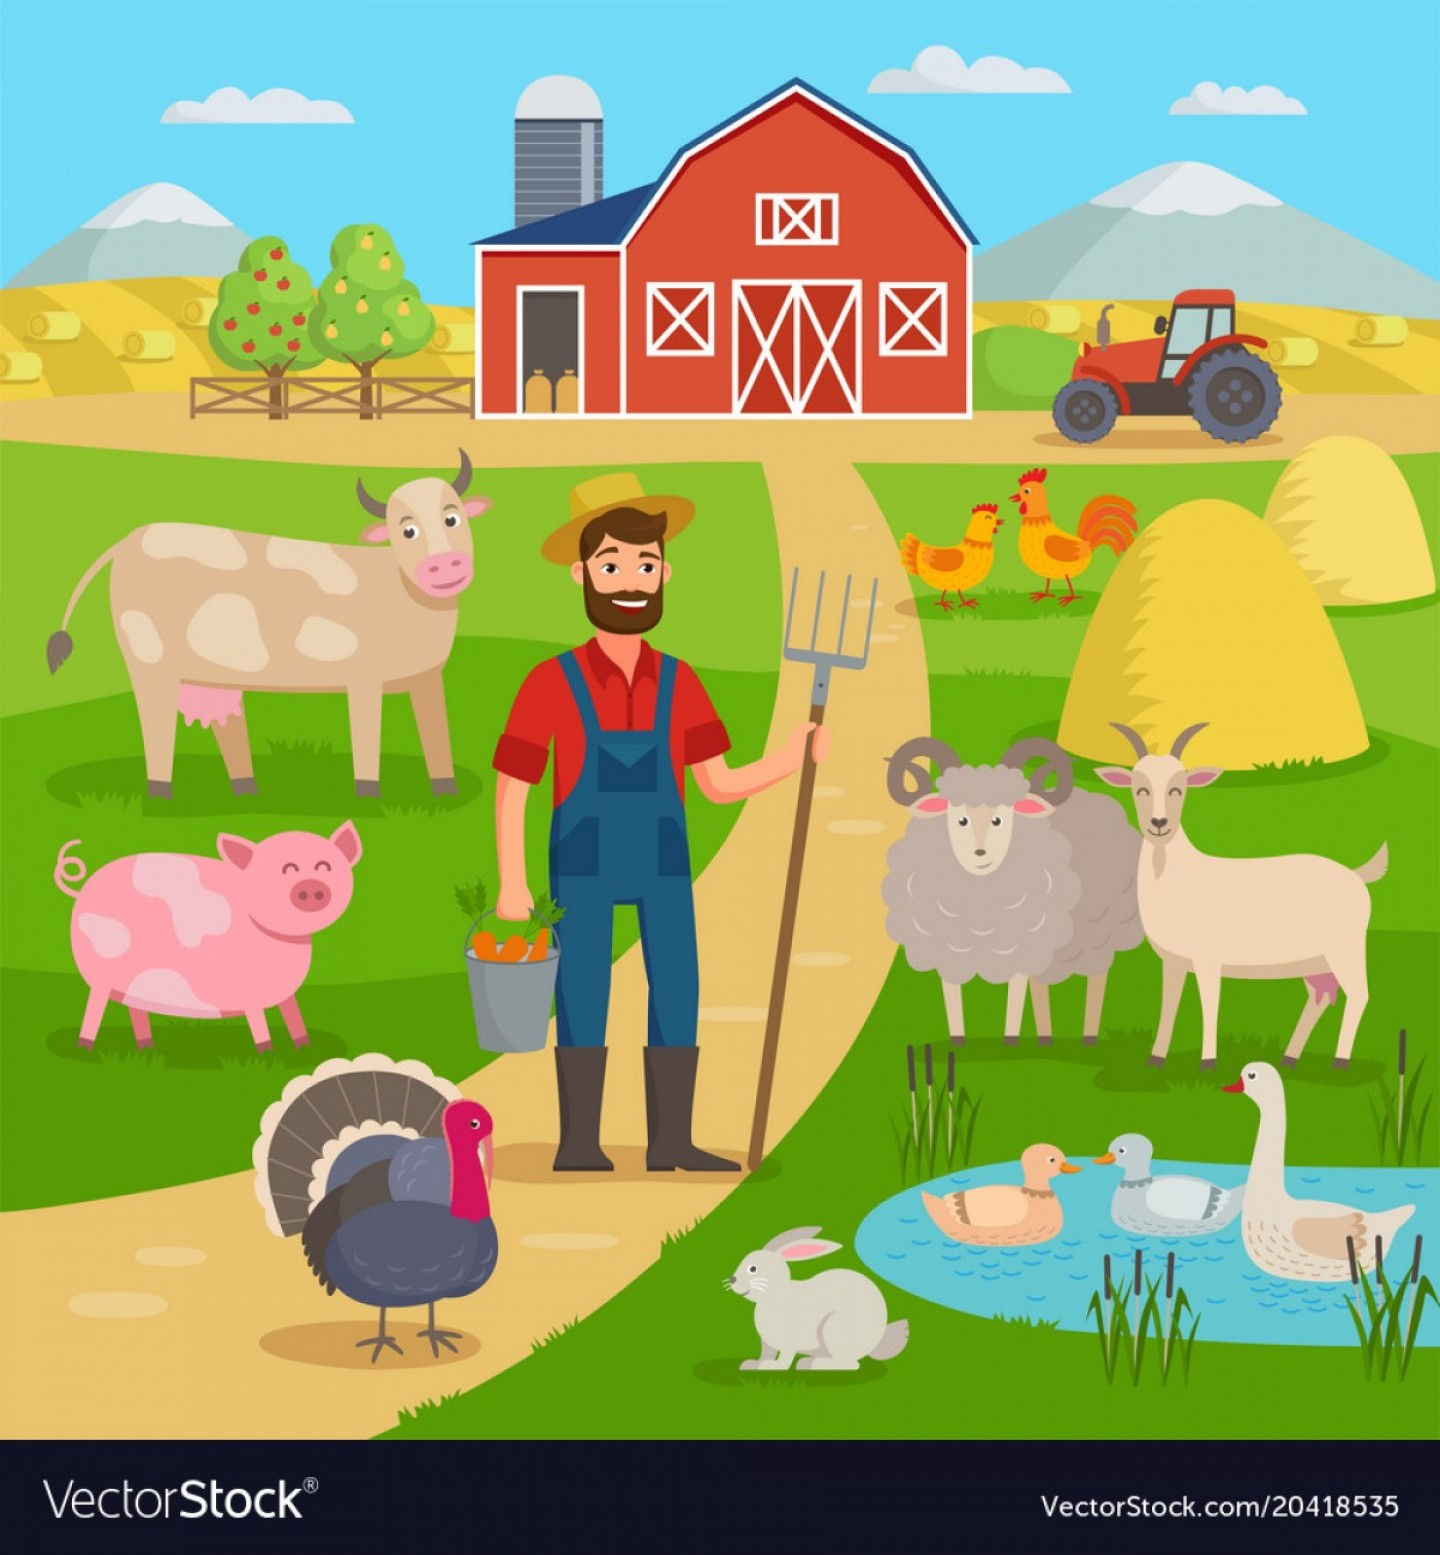 Farm Vector Illustration: Happy Farmer With Agricultural Landscape And Farm Vector